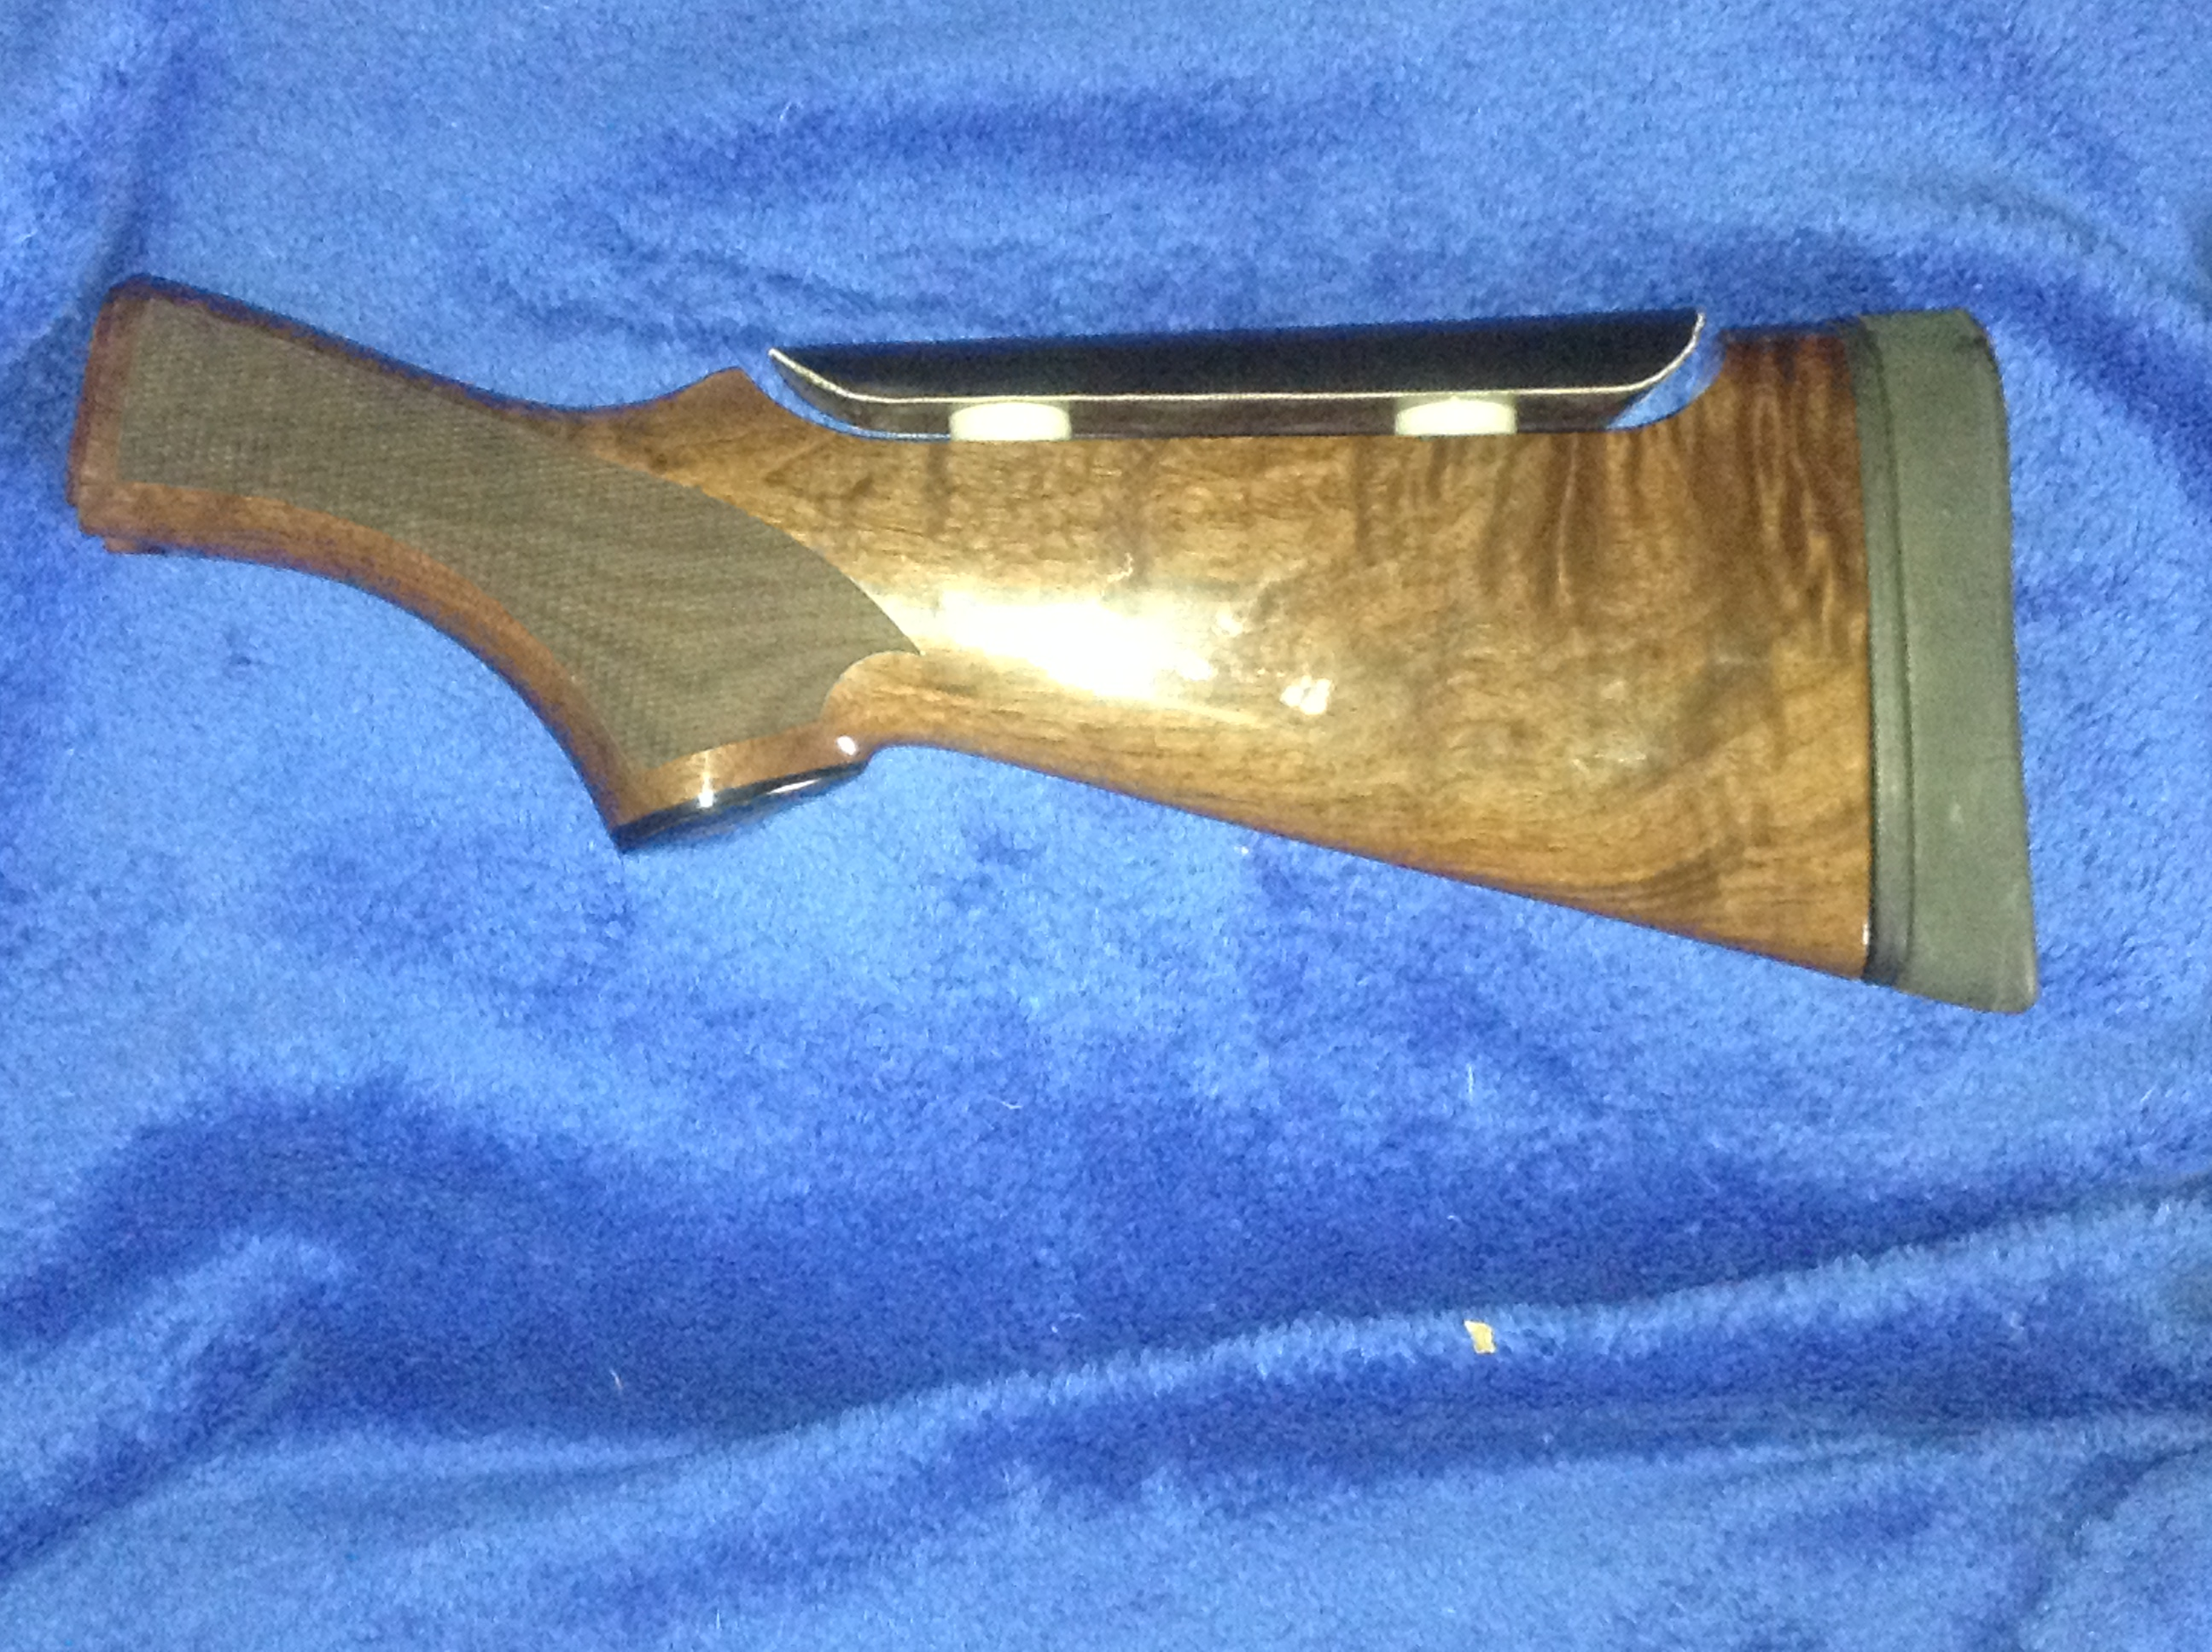 Sold - Remington 1100, 11-87, 870 Stock with Adjustable Comb